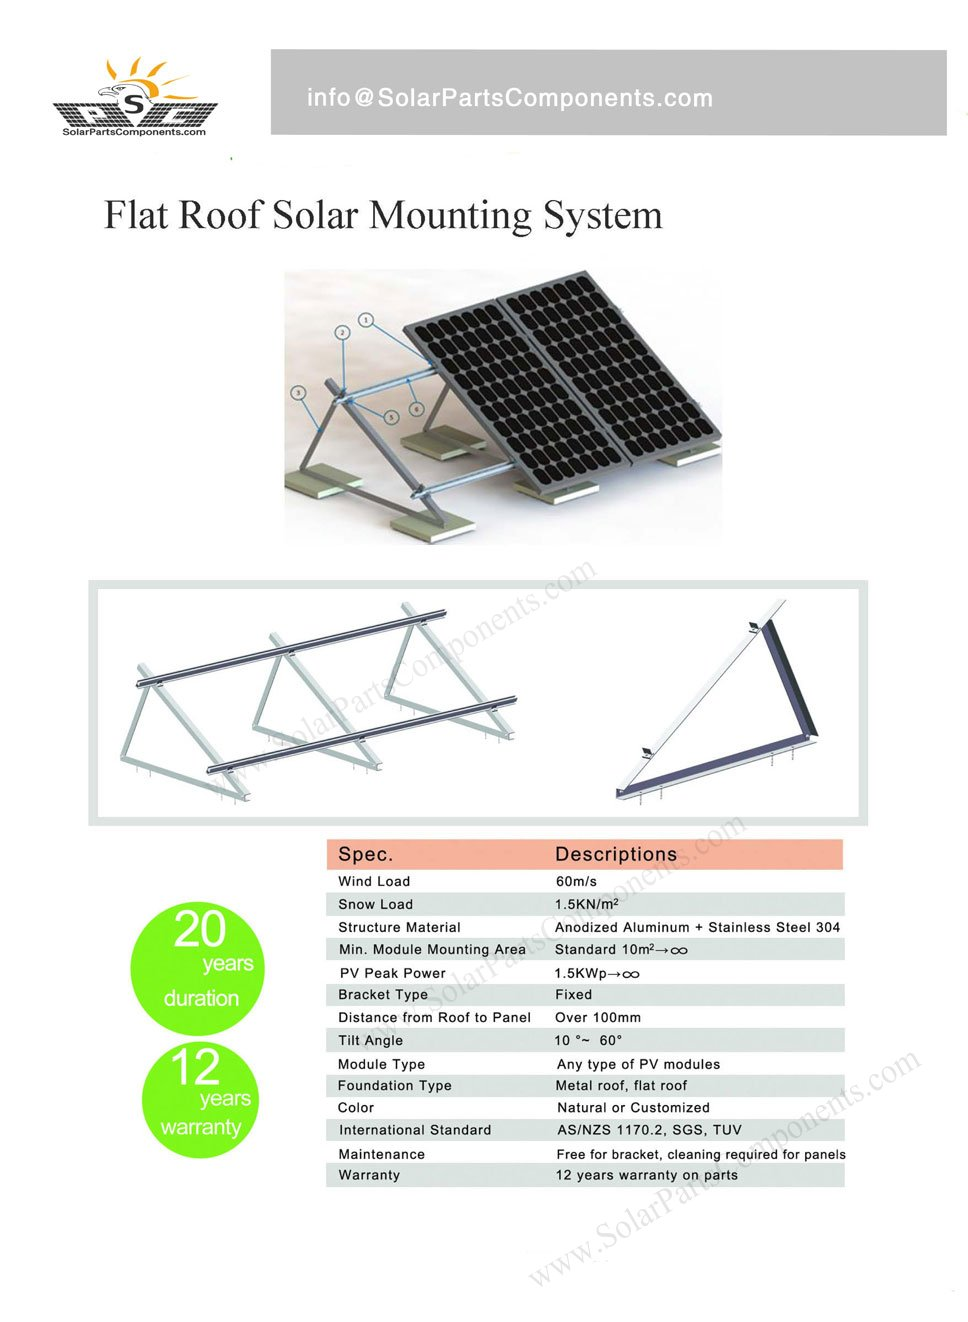 Solar Mounting System for Flat Roof Fixed Angle